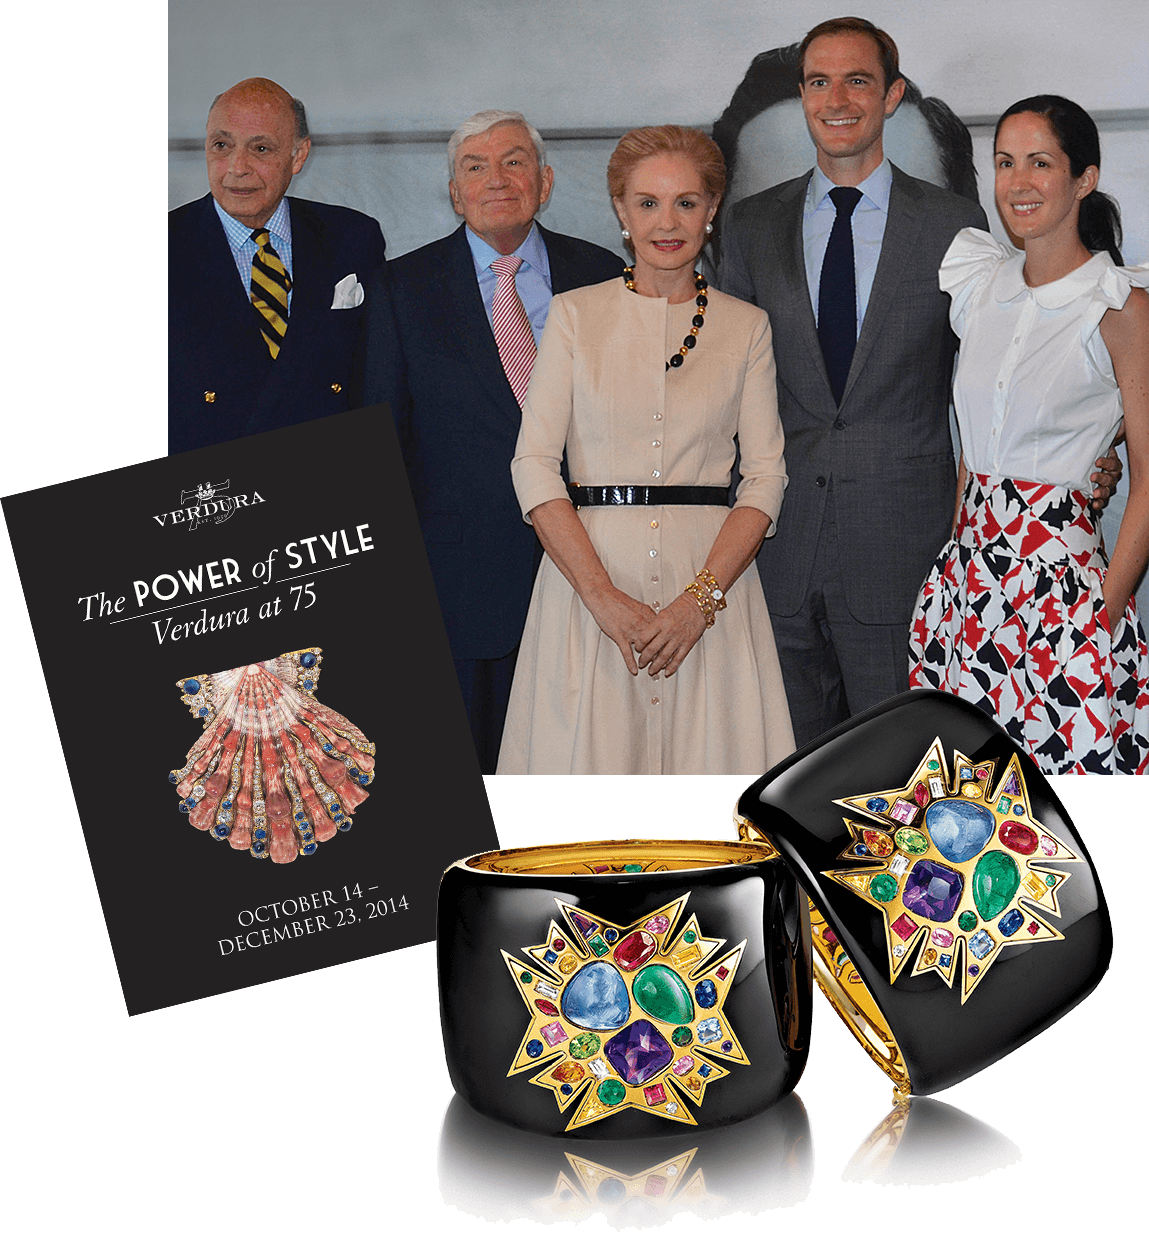 Photo of exhibition curators (from left to right) Reinaldo Herrera, Ward Landrigan, Carolina Herrera, Nico Landrigan, and Patricia Lansing, Verdura's 75th Anniversary Exhibition poster, and pair of 75th Anniversary limited edition Theodora Cuffs